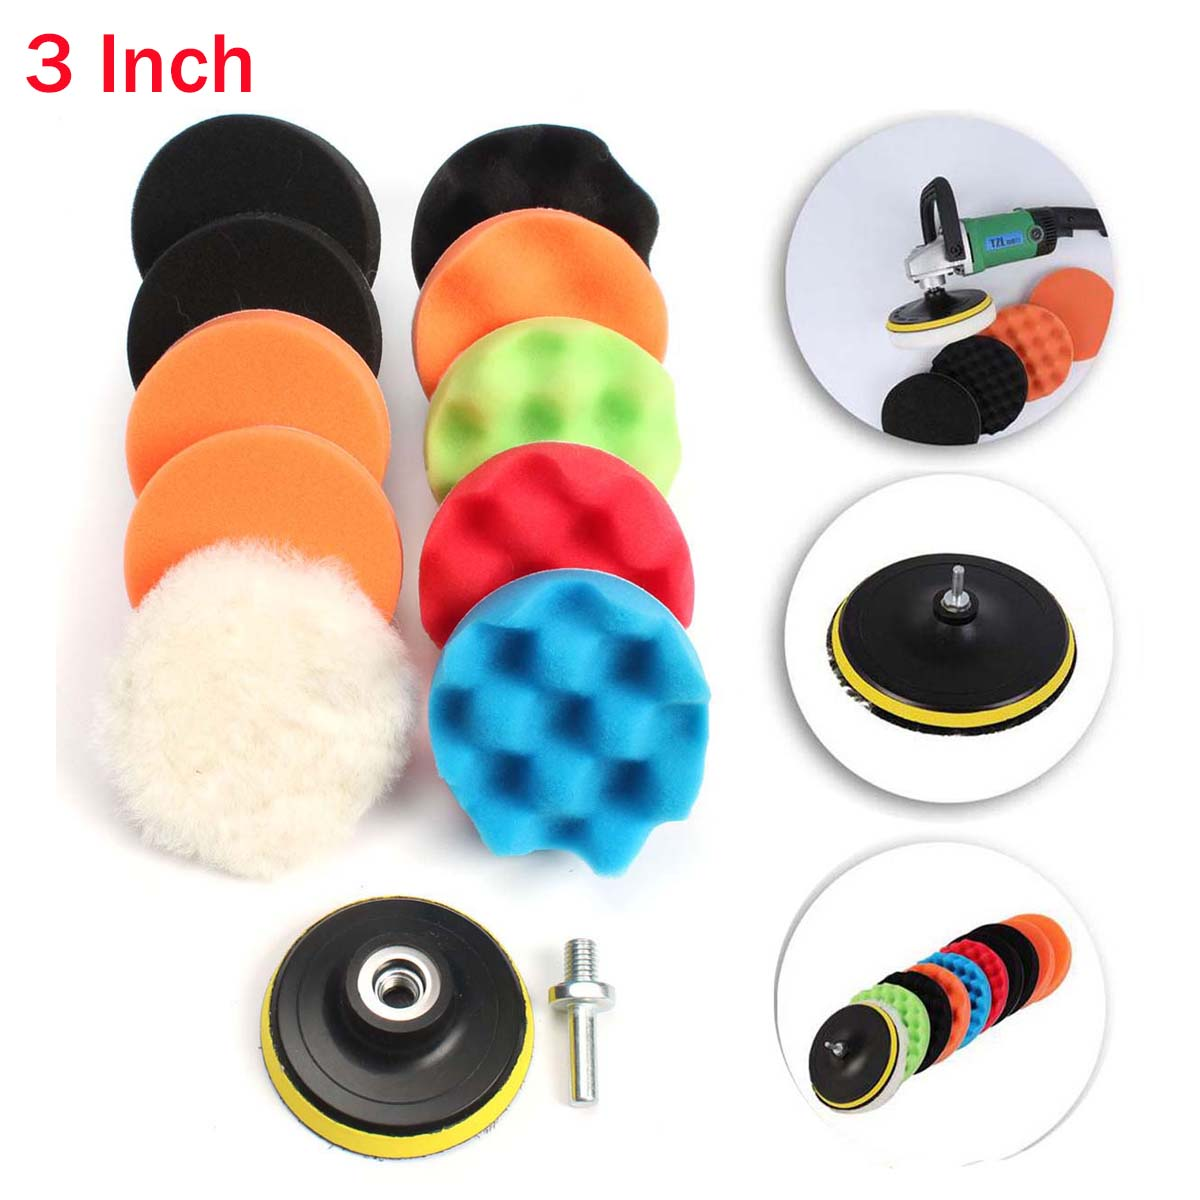 "11Pcs 3""/5""/6""/7"" Waffle Buffer Compound Waxing Polishing Wheel Tool Sponge Pad Drill Adapter Kit Set For Auto Car Polisher Select Size"